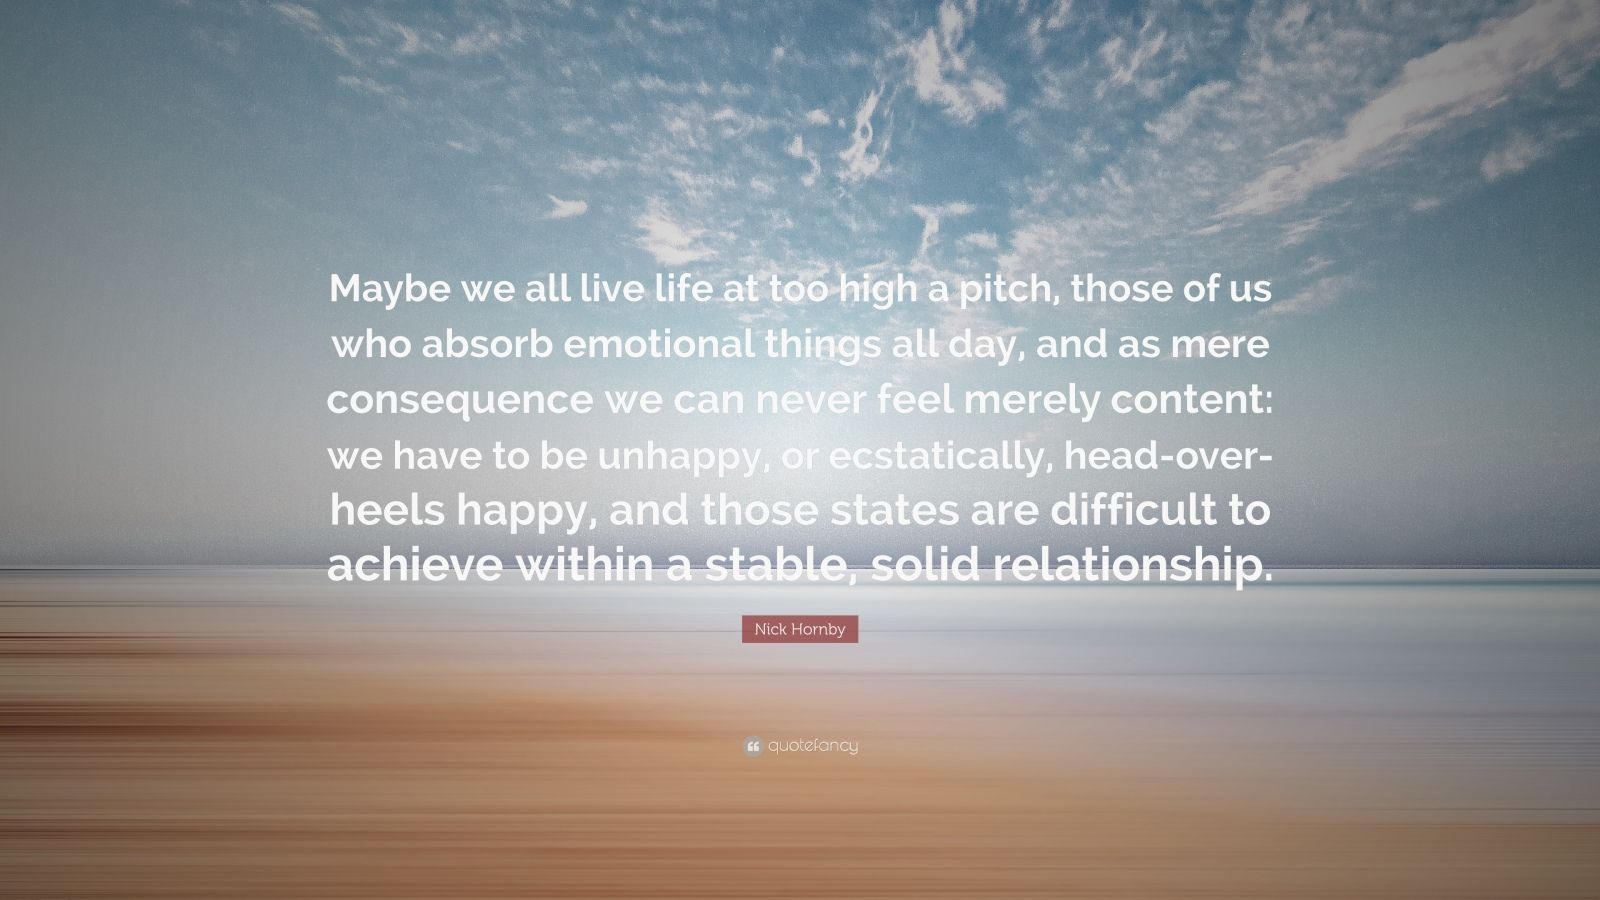 """Nick Hornby Quote: """"Maybe we all live life at too high a pitch, those of us who absorb emotional things all day, and as mere consequence we can never feel merely content: we have to be unhappy, or ecstatically, head-over-heels happy, and those states are difficult to achieve within a stable, solid relationship."""""""